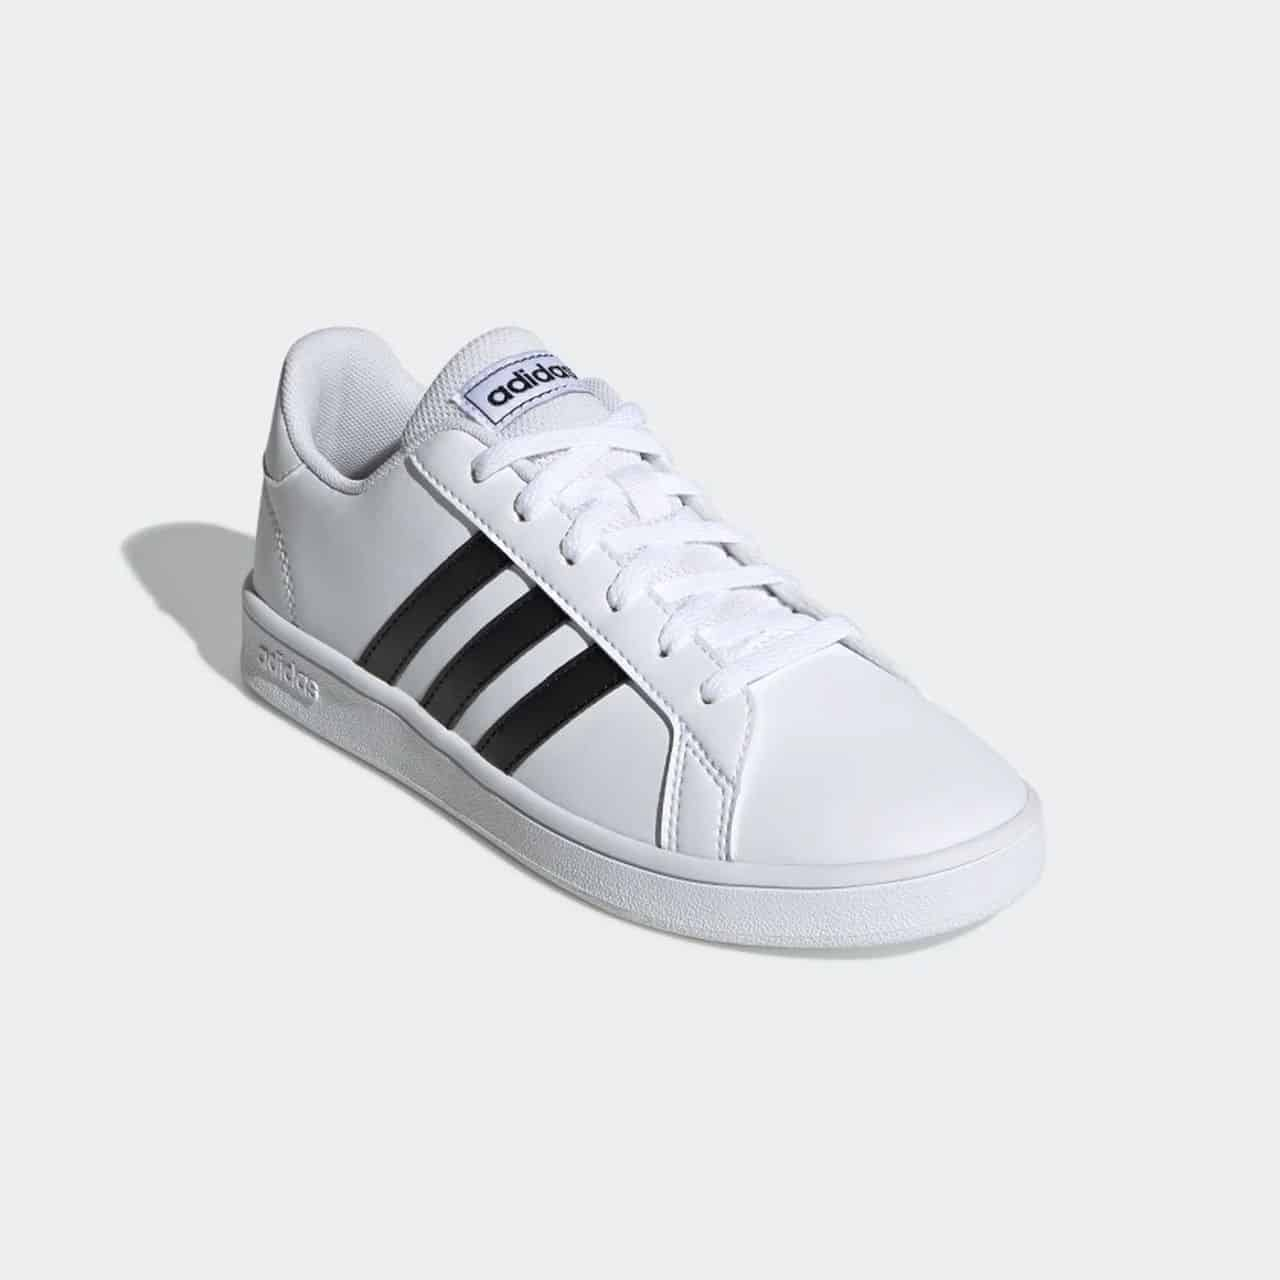 ADIDASI ORIGINALI ADIDAS GRAND COURT K - EF0103